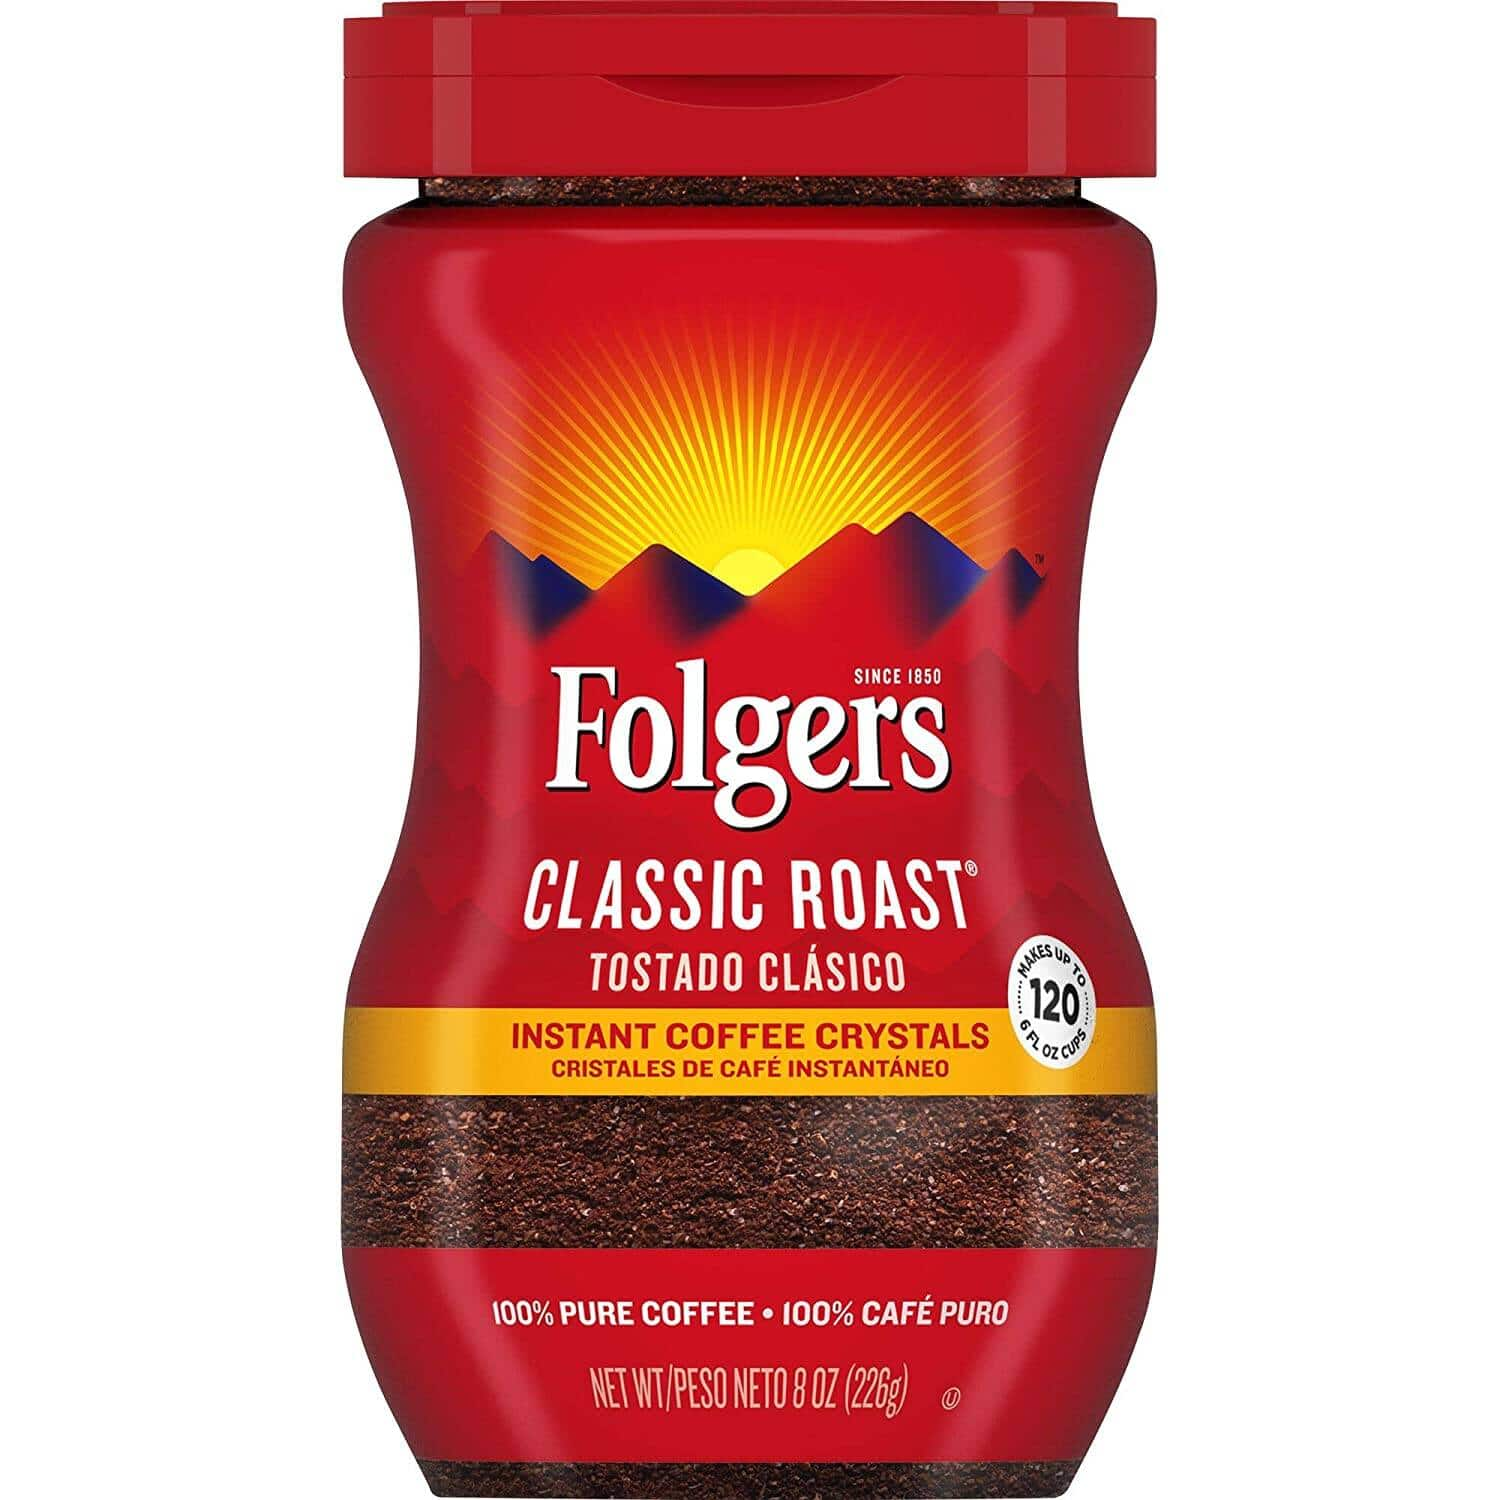 8-Oz Folgers Classic Roast Instant Coffee Crystals $3.41 w/ S&S + Free Shipping w/ Prime or on $25+